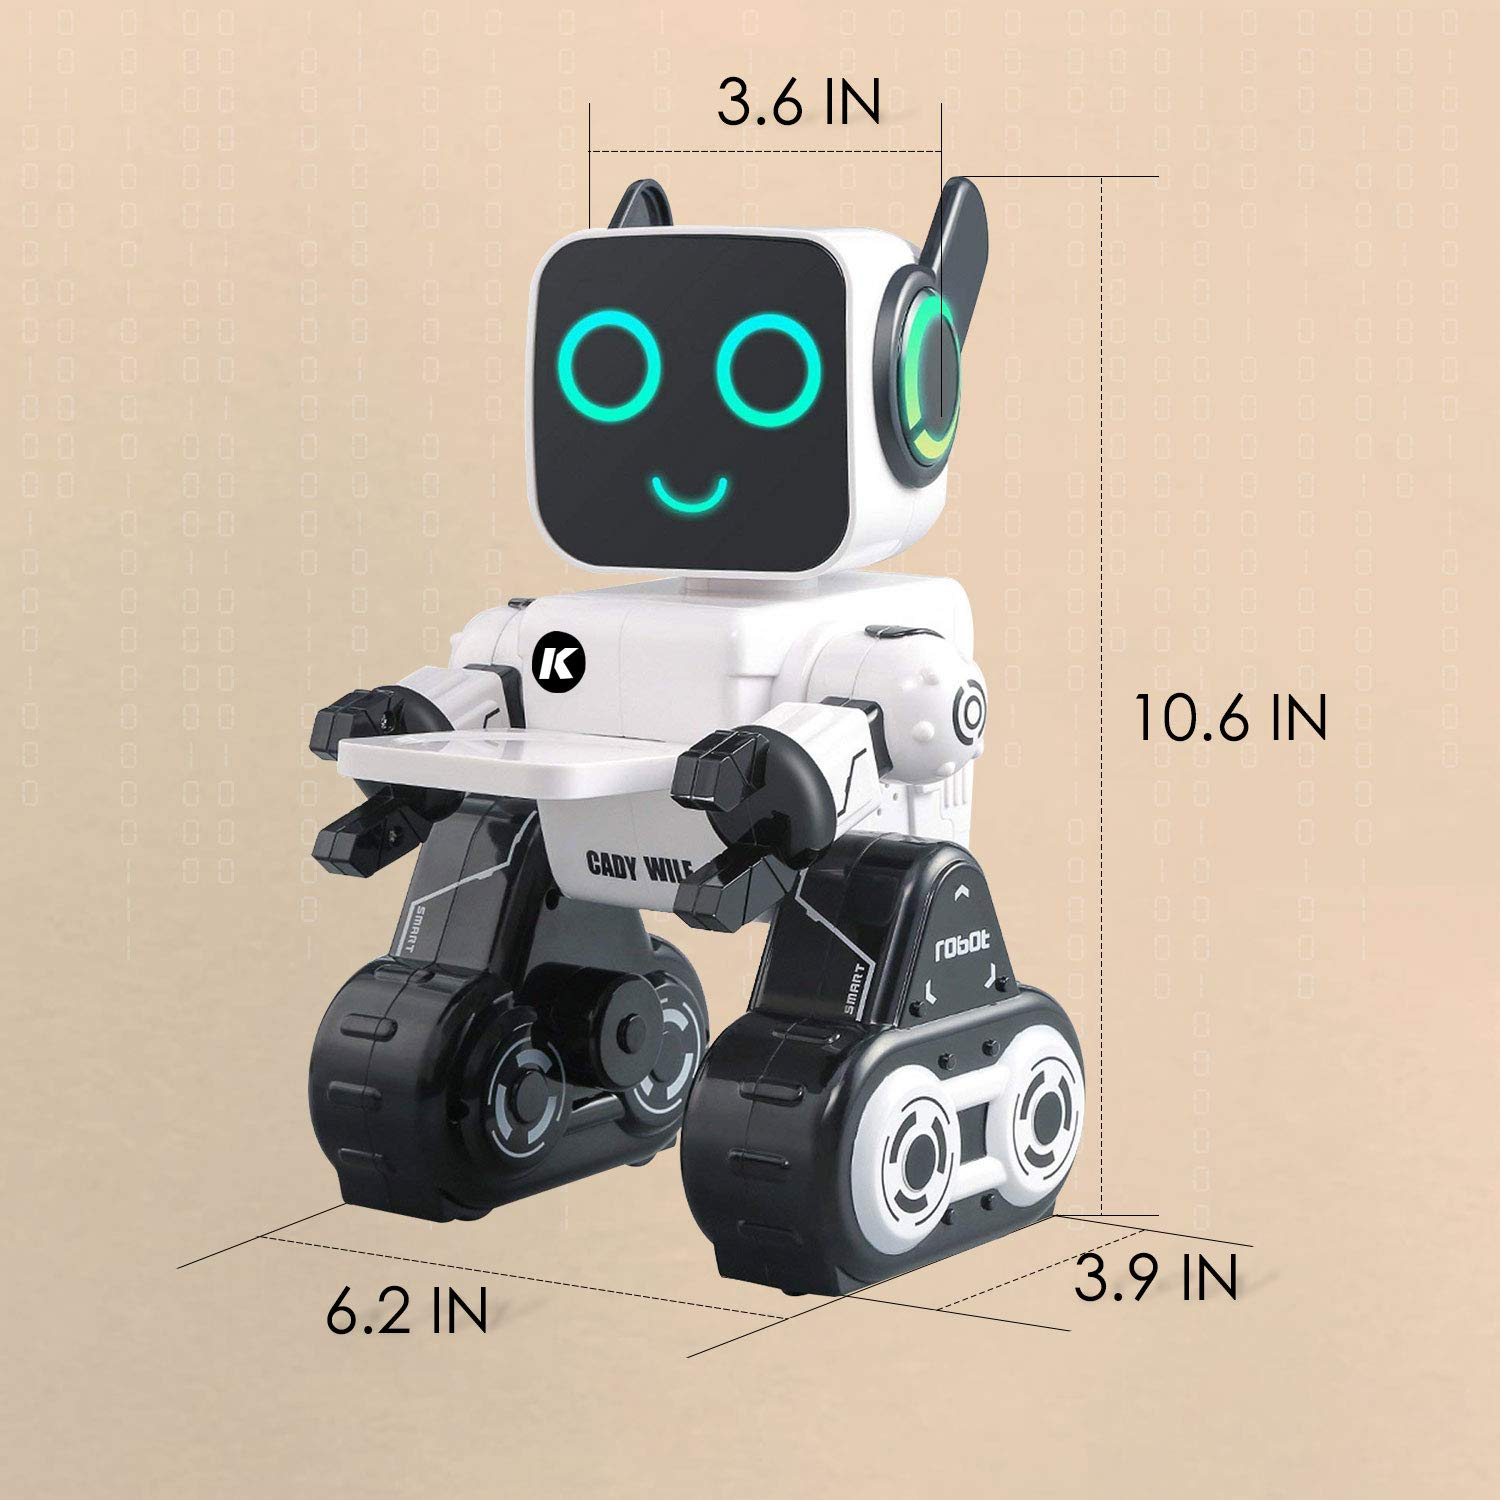 Remote Control Toy Robot for kids,Touch & Sound Control, Speaks, Dance Moves, Plays Music, Light-up Eyes & Mouth. Built-in Coin Bank. Programmable, Rechargeable RC Robot Kit for Boys, Girls All Ages. by IHBUDS (Image #9)